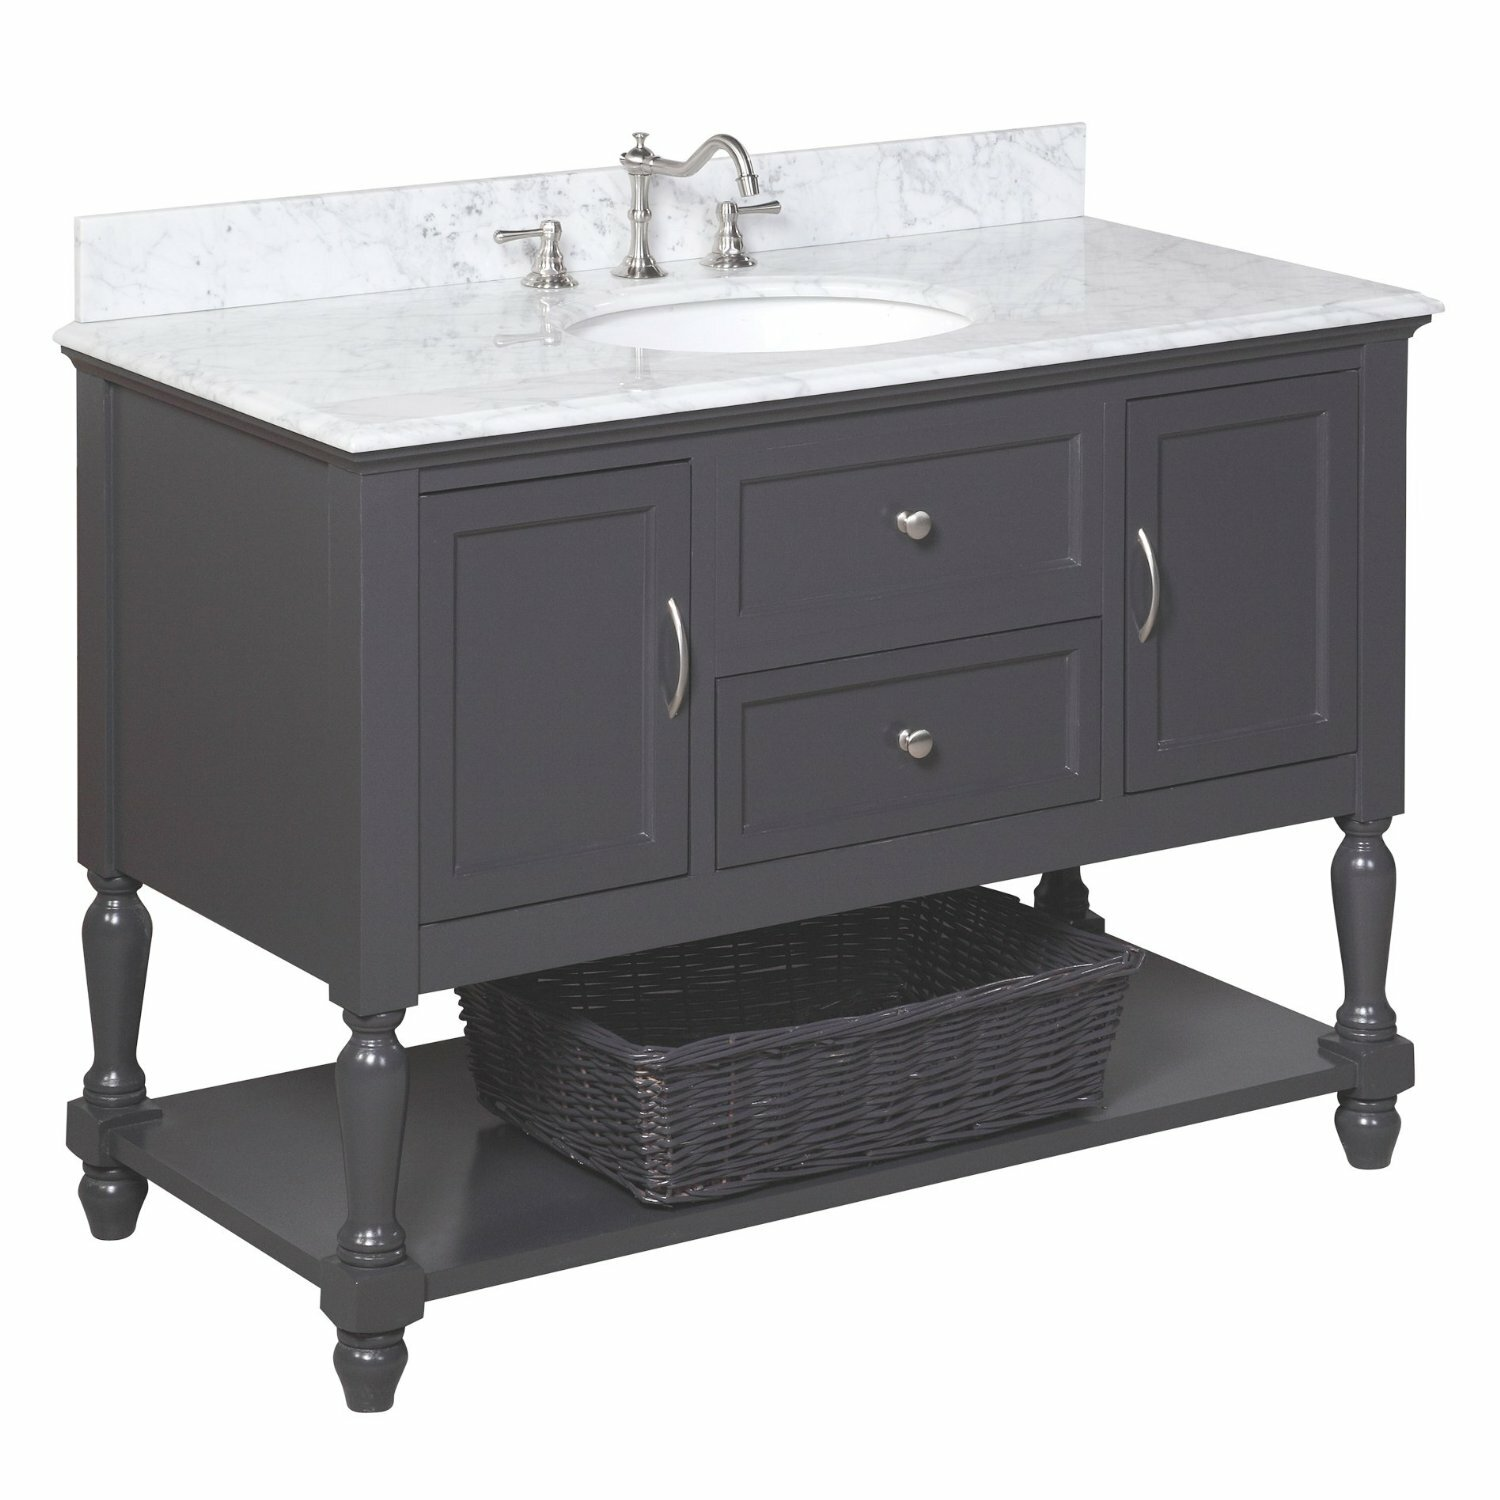 Kbc beverly 48 single bathroom vanity set reviews wayfair for Bath and vanity set